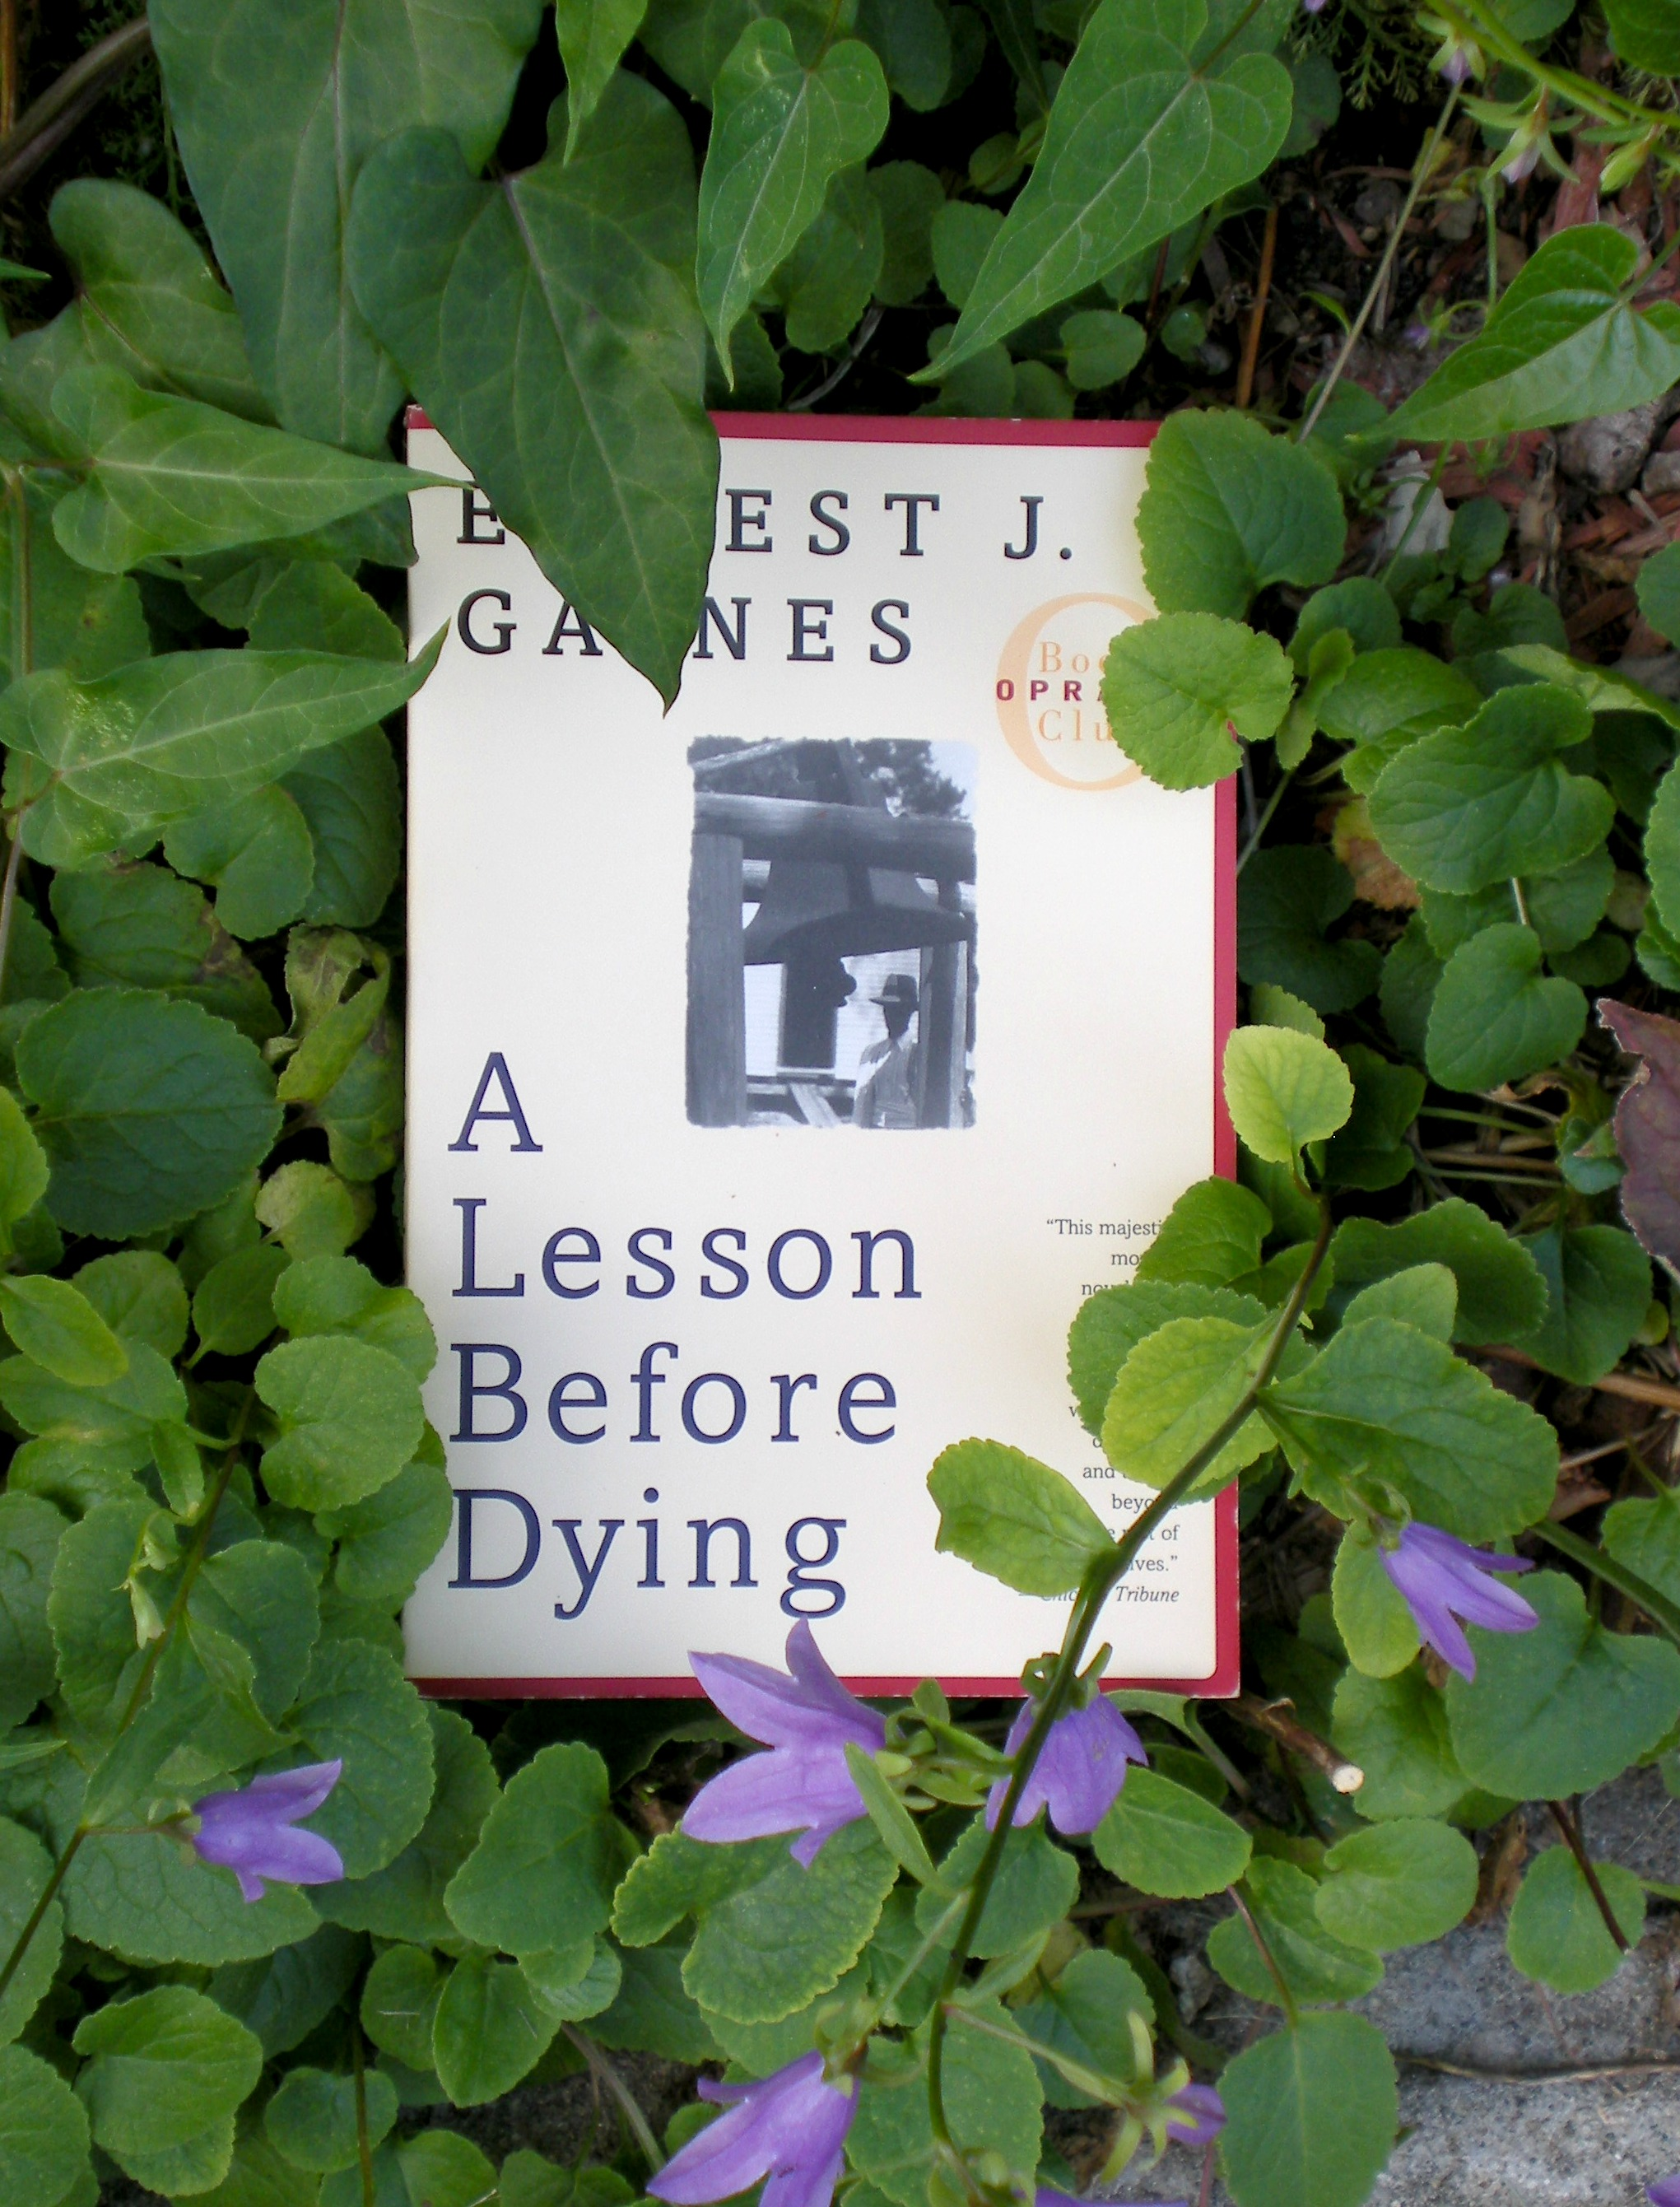 What I Read: A Lesson Before Dying